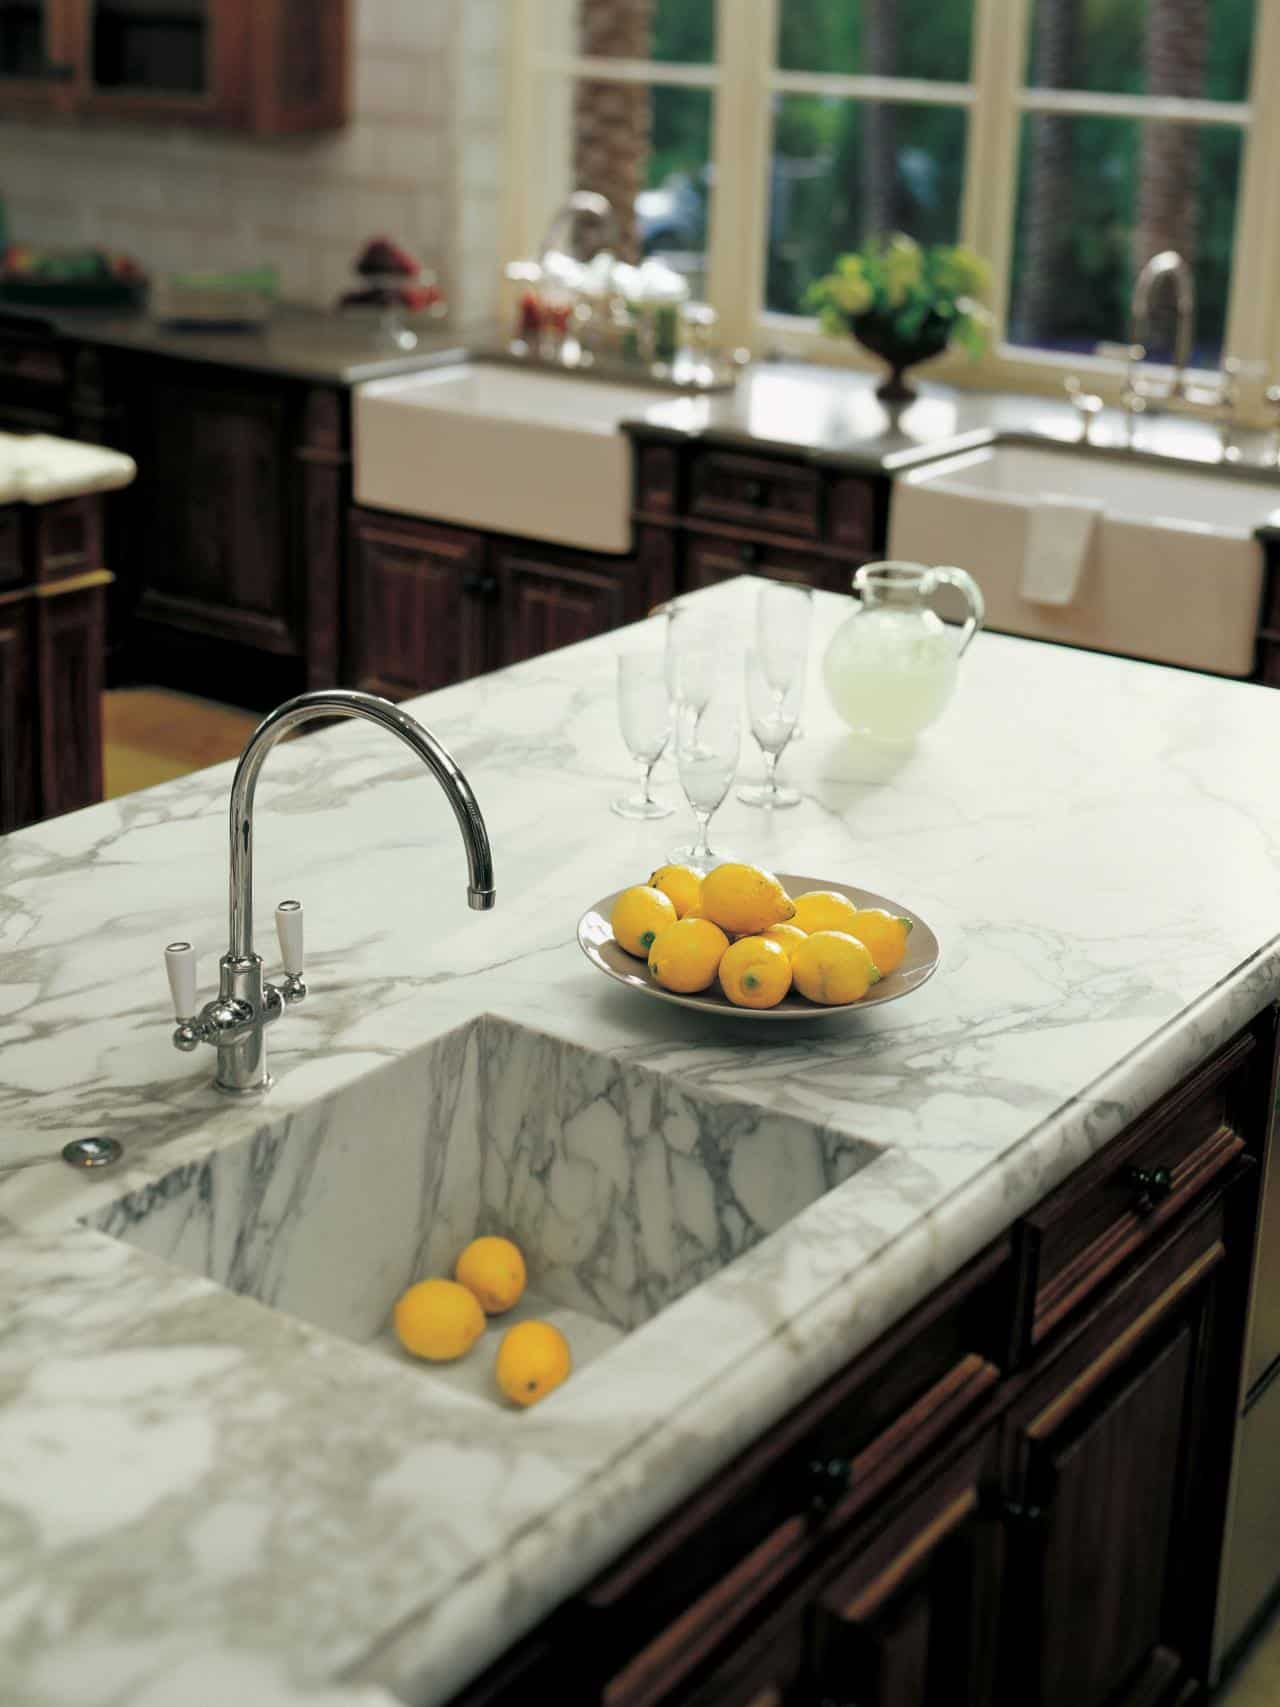 marble kitchen countertop and sink